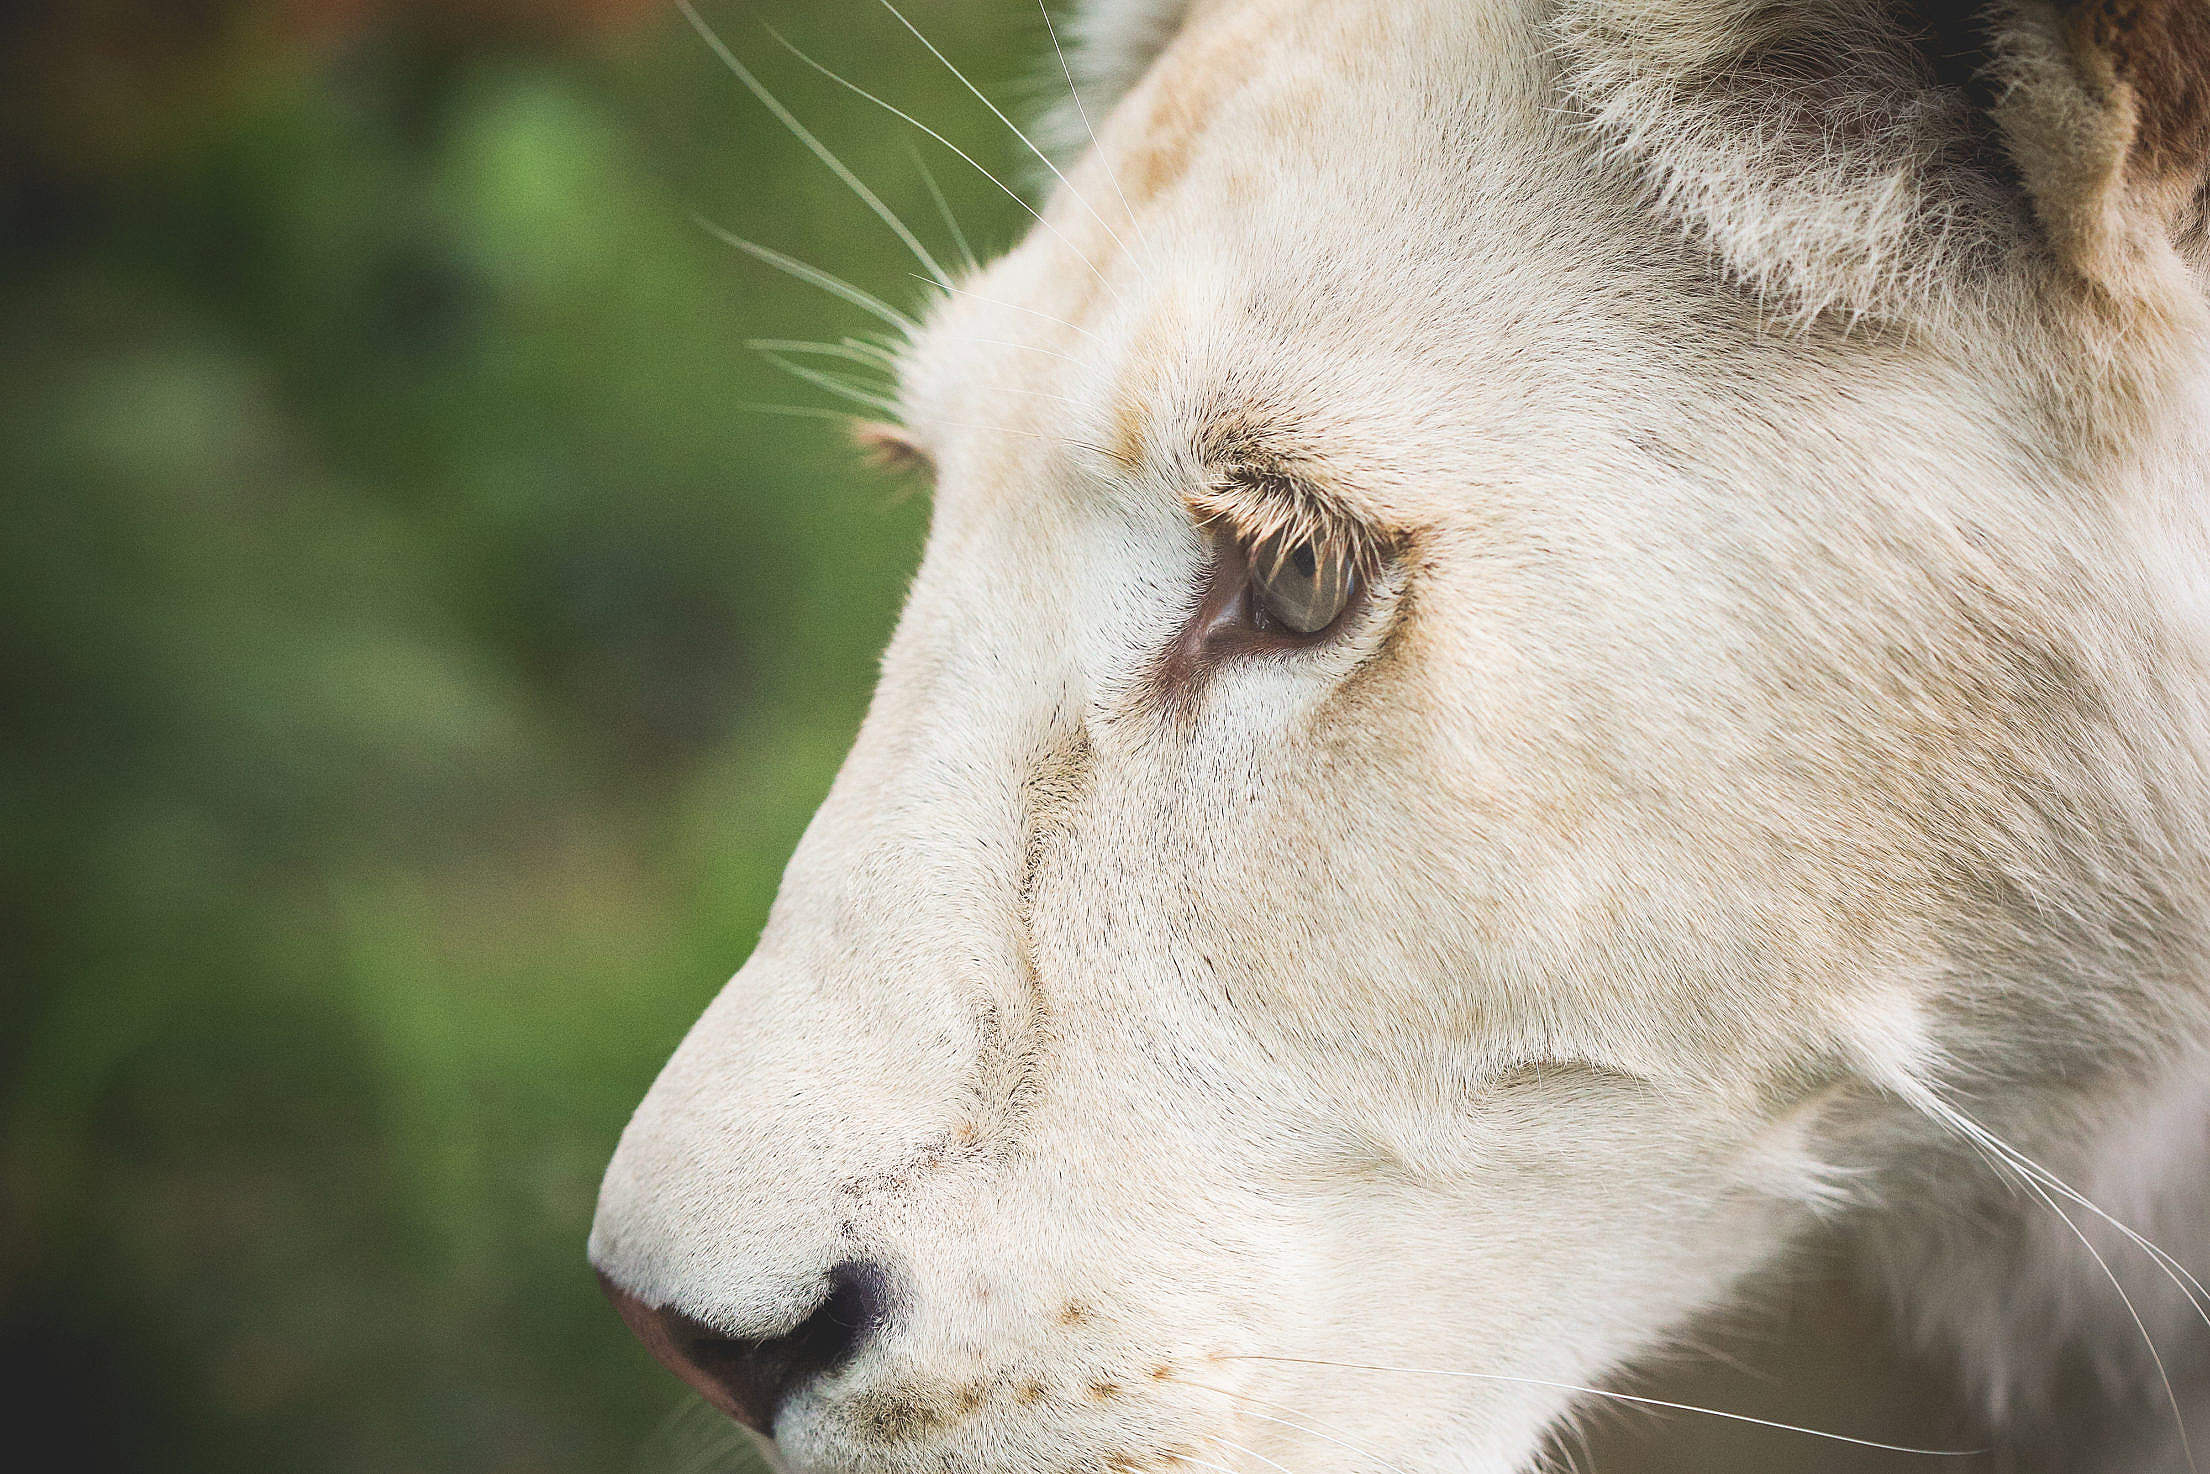 Eye of a White Lion Free Stock Photo